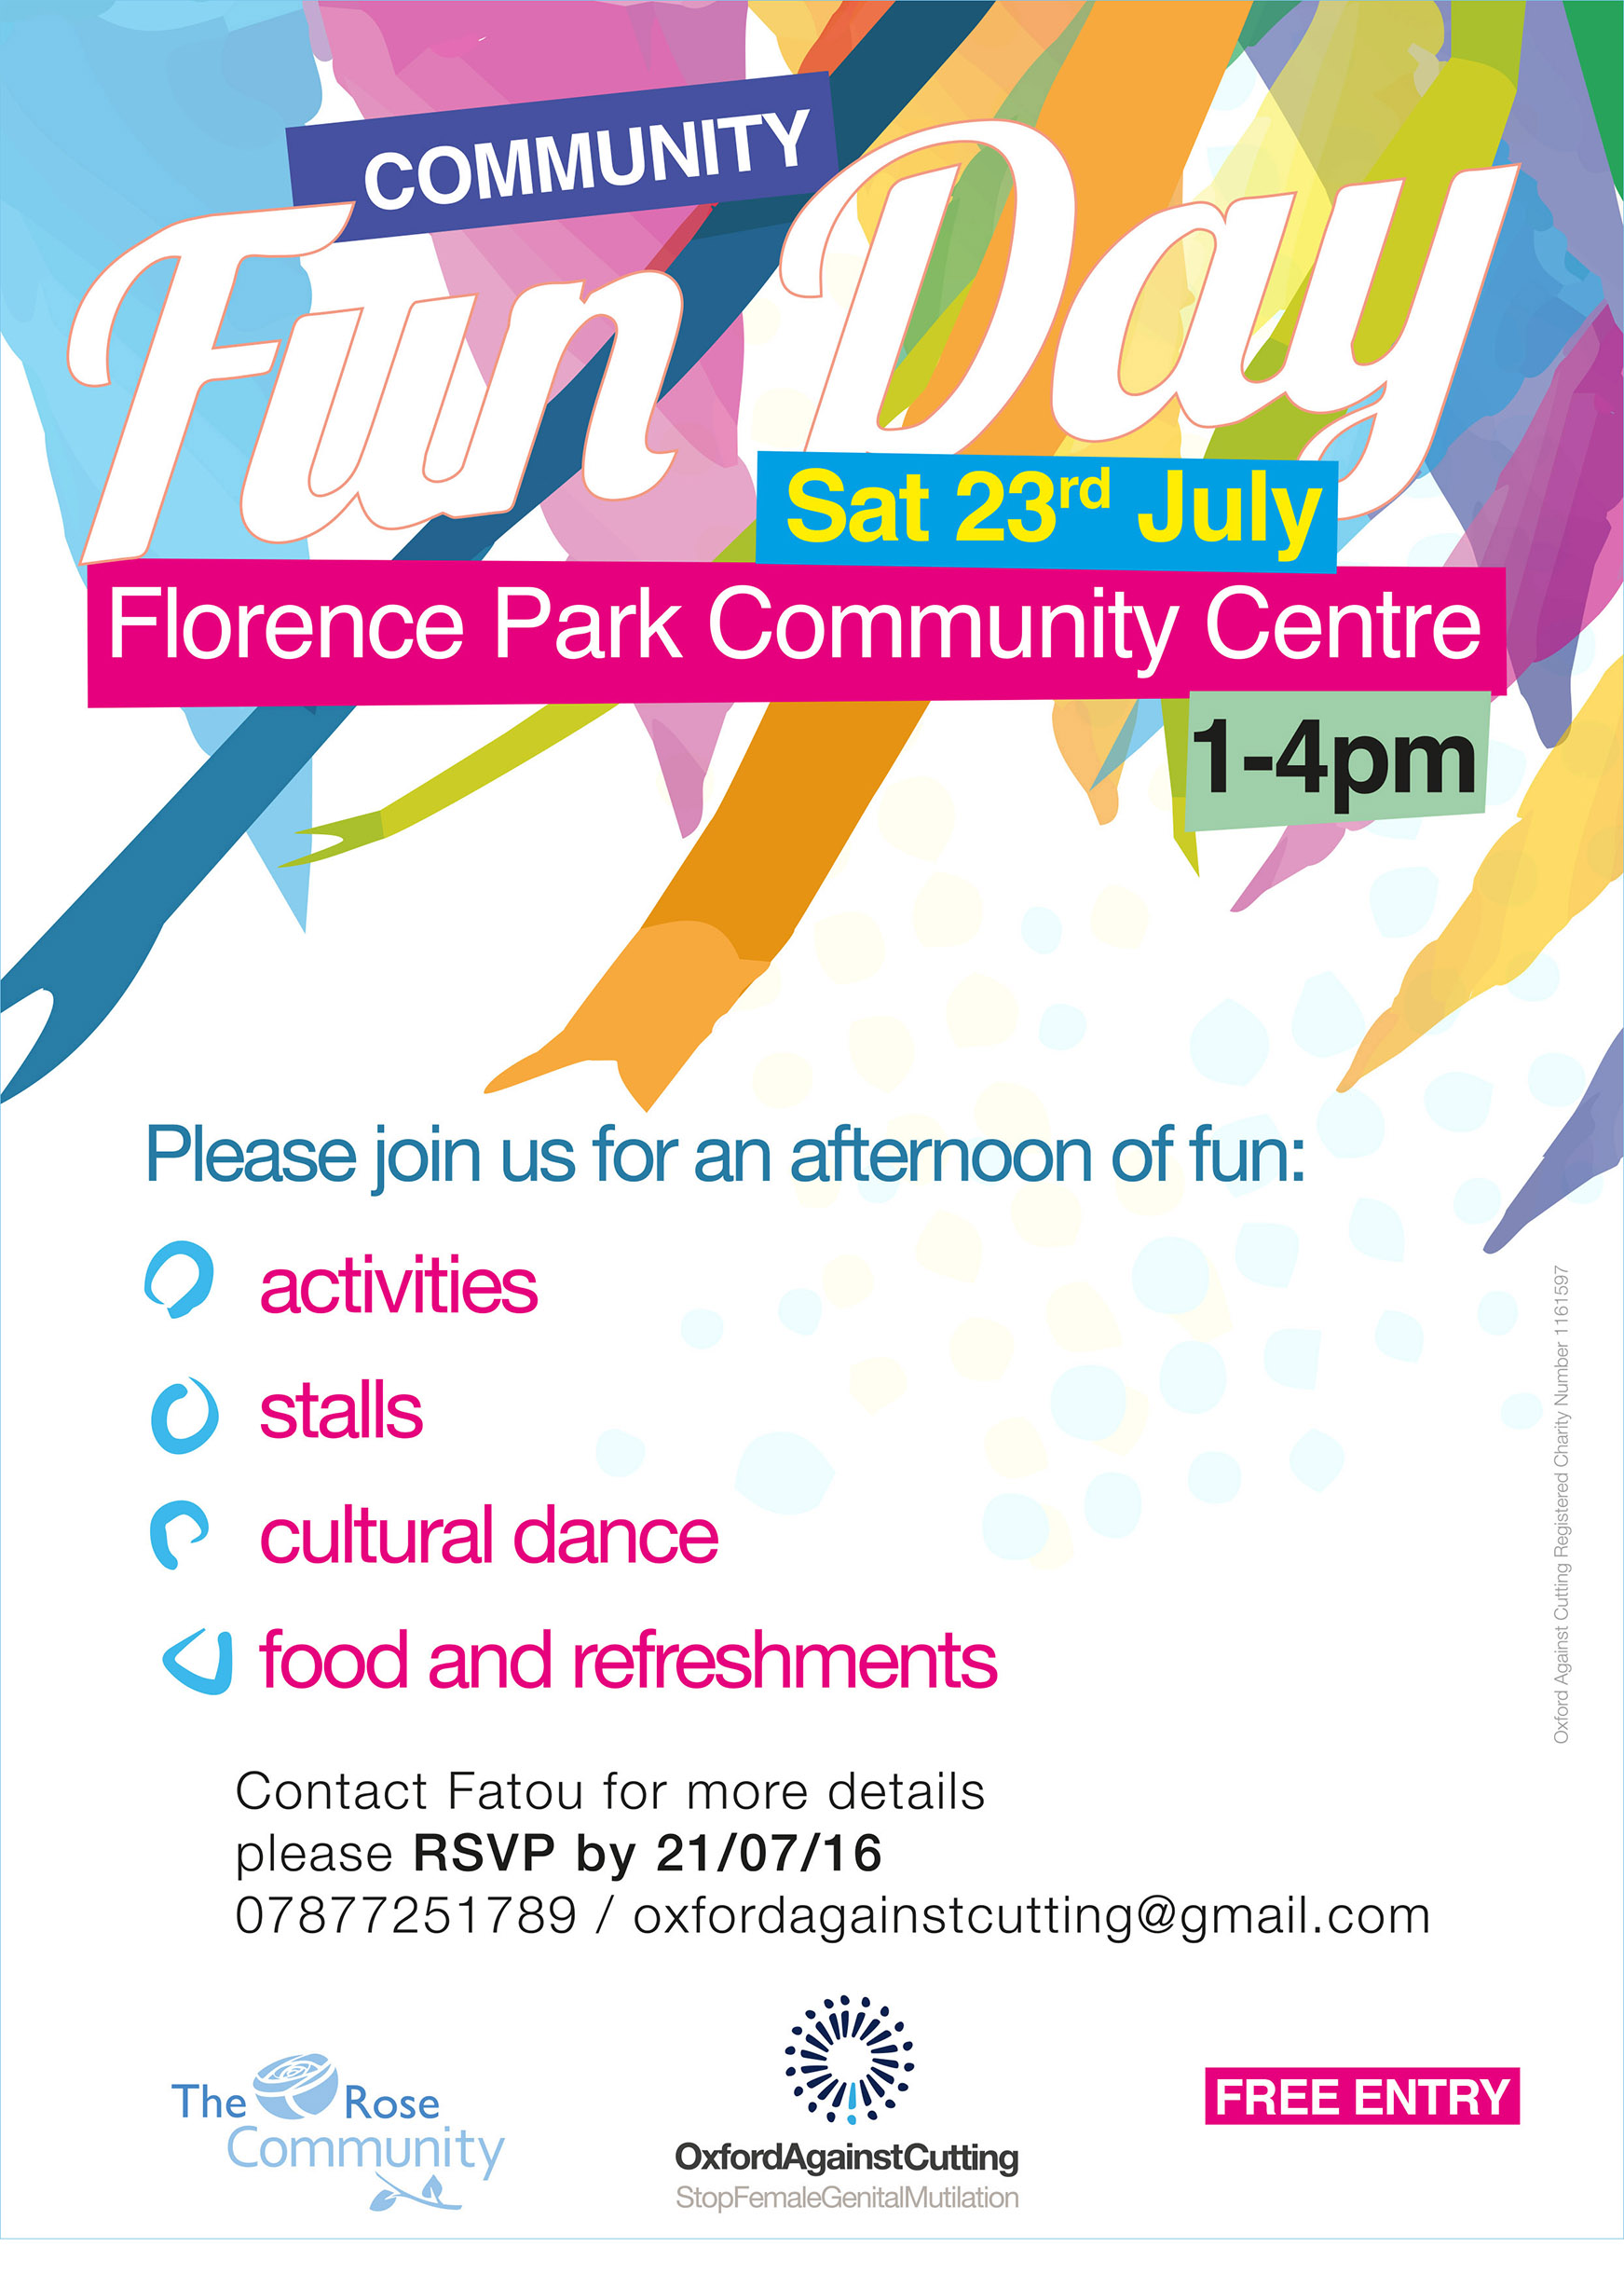 Community fun day event poster j-peg